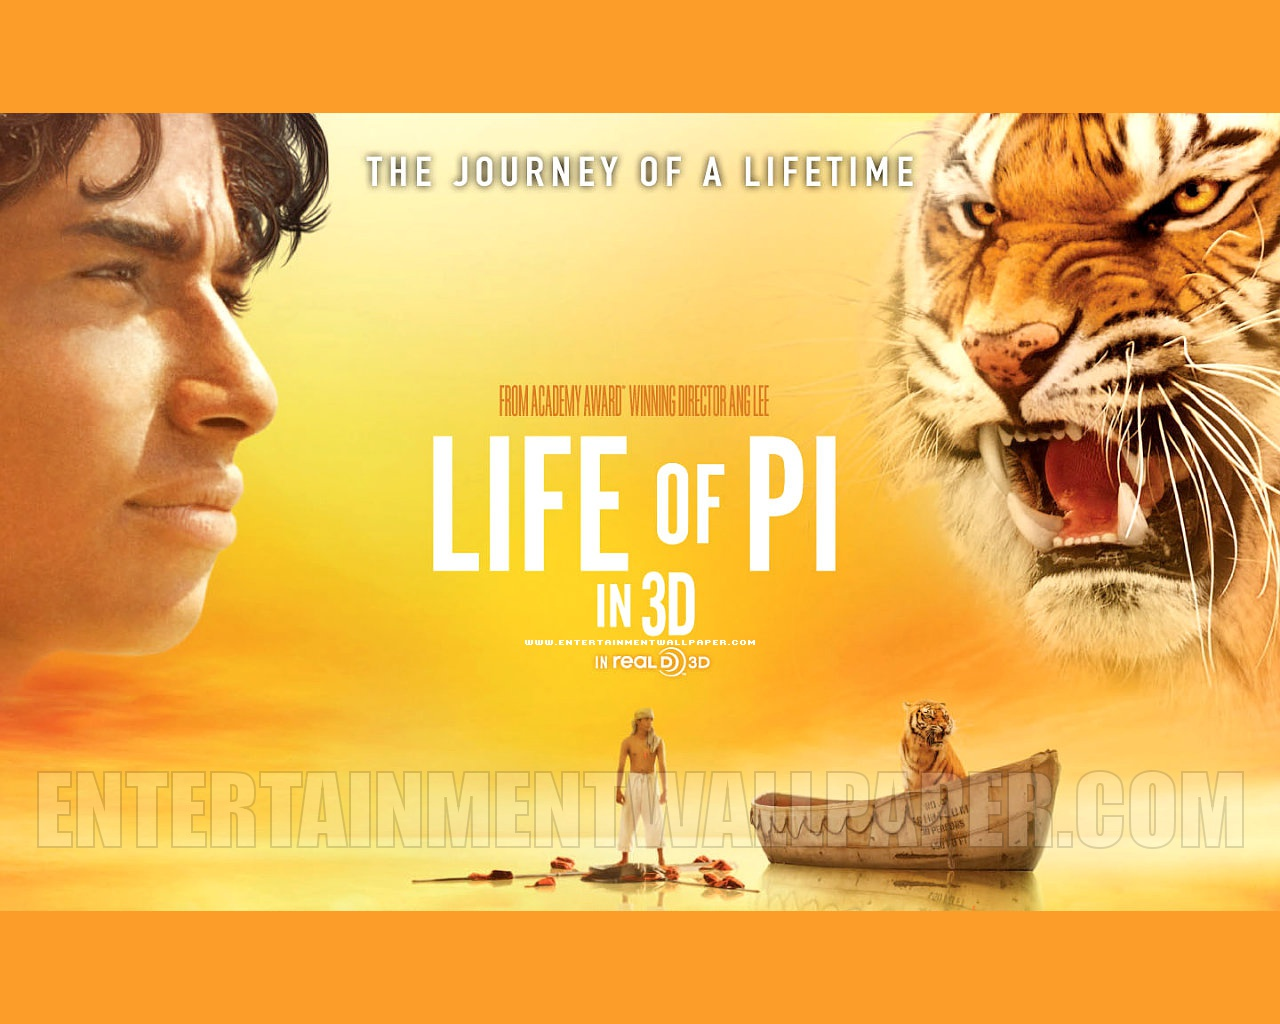 Life of pi wallpapers hd wallpapers for Life of pi cast